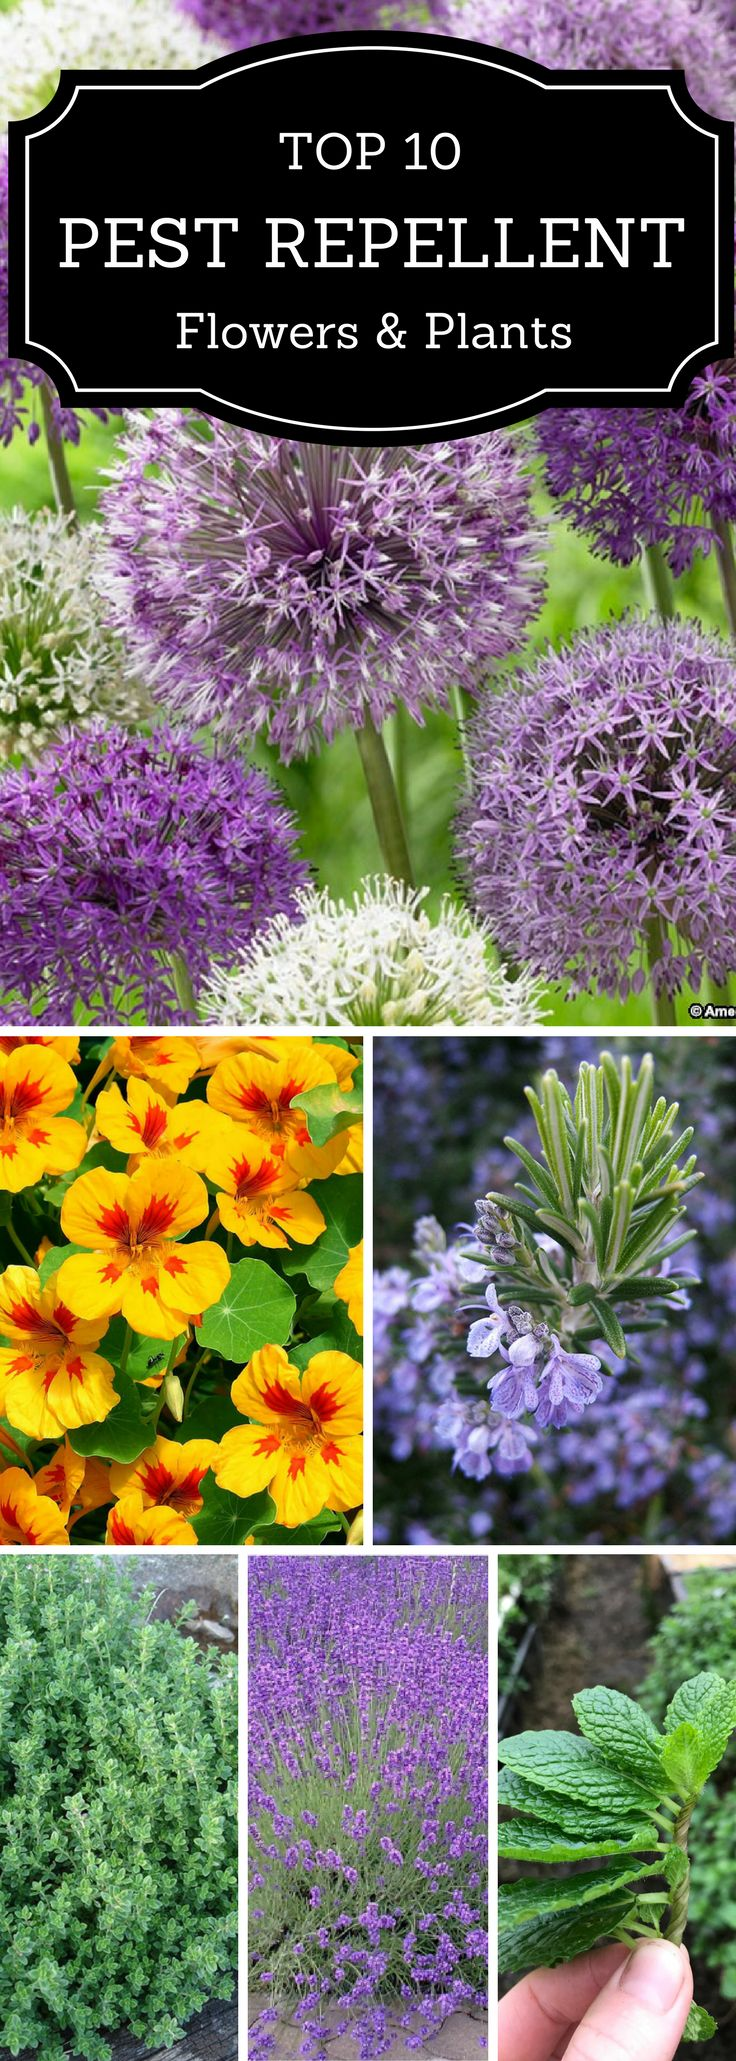 Top 10 Bug Repelling Flowers That Keep Pests Out Of Your Garden | Top 10 Pest Repellant Flowers & Plants | Add these 10 plants into your garden to avoid bugs and pests.